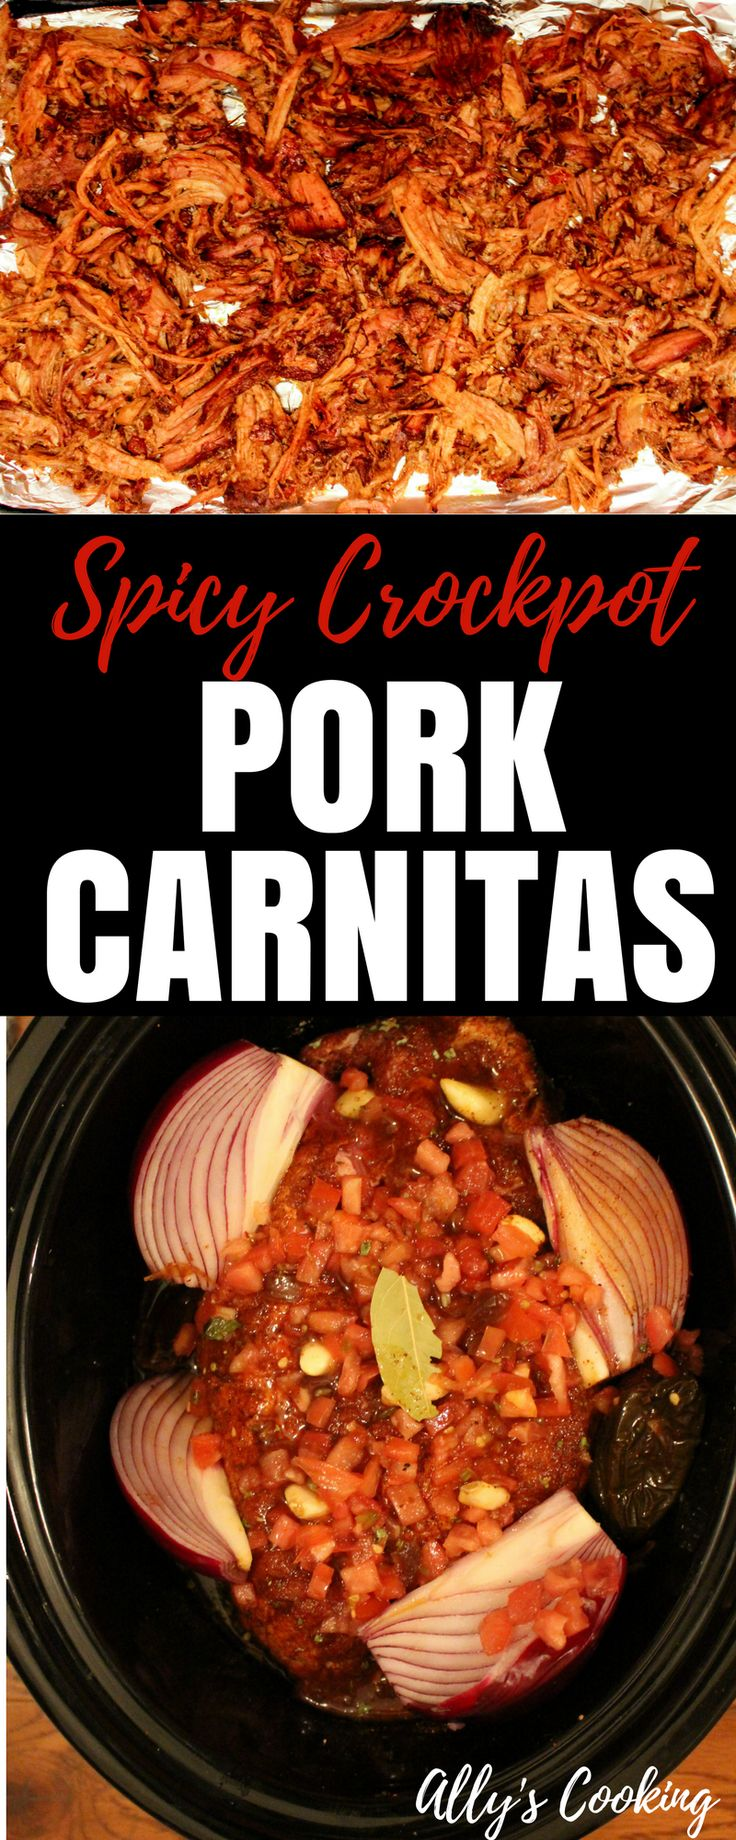 Spicy pork carnitas recipe